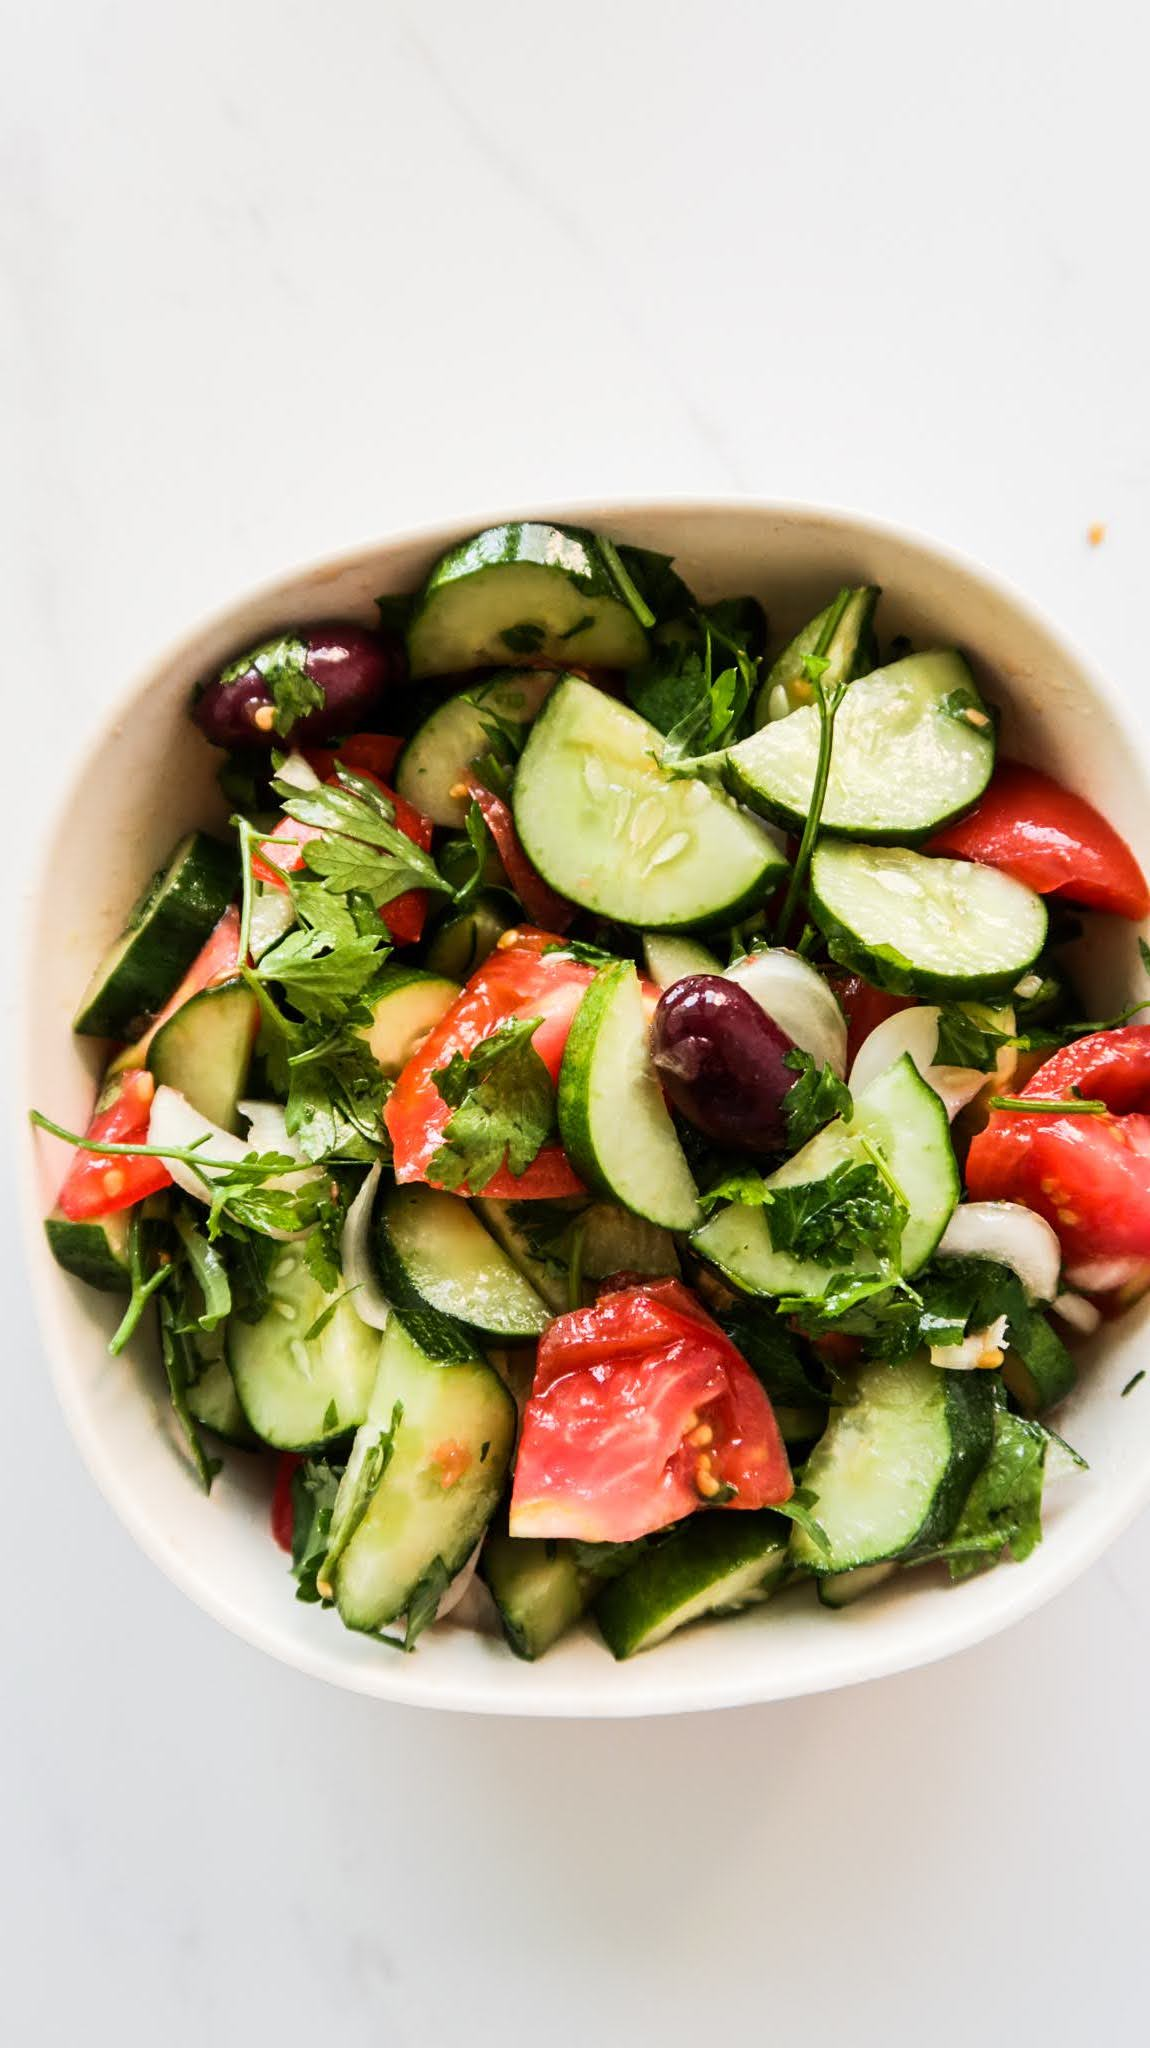 This 5-minute tomato cucumber salad is quick, easy and tasty! It's gluten free, vegan, low carb and it's the best vegetable side dish when tomatoes and cucumbers are in season!